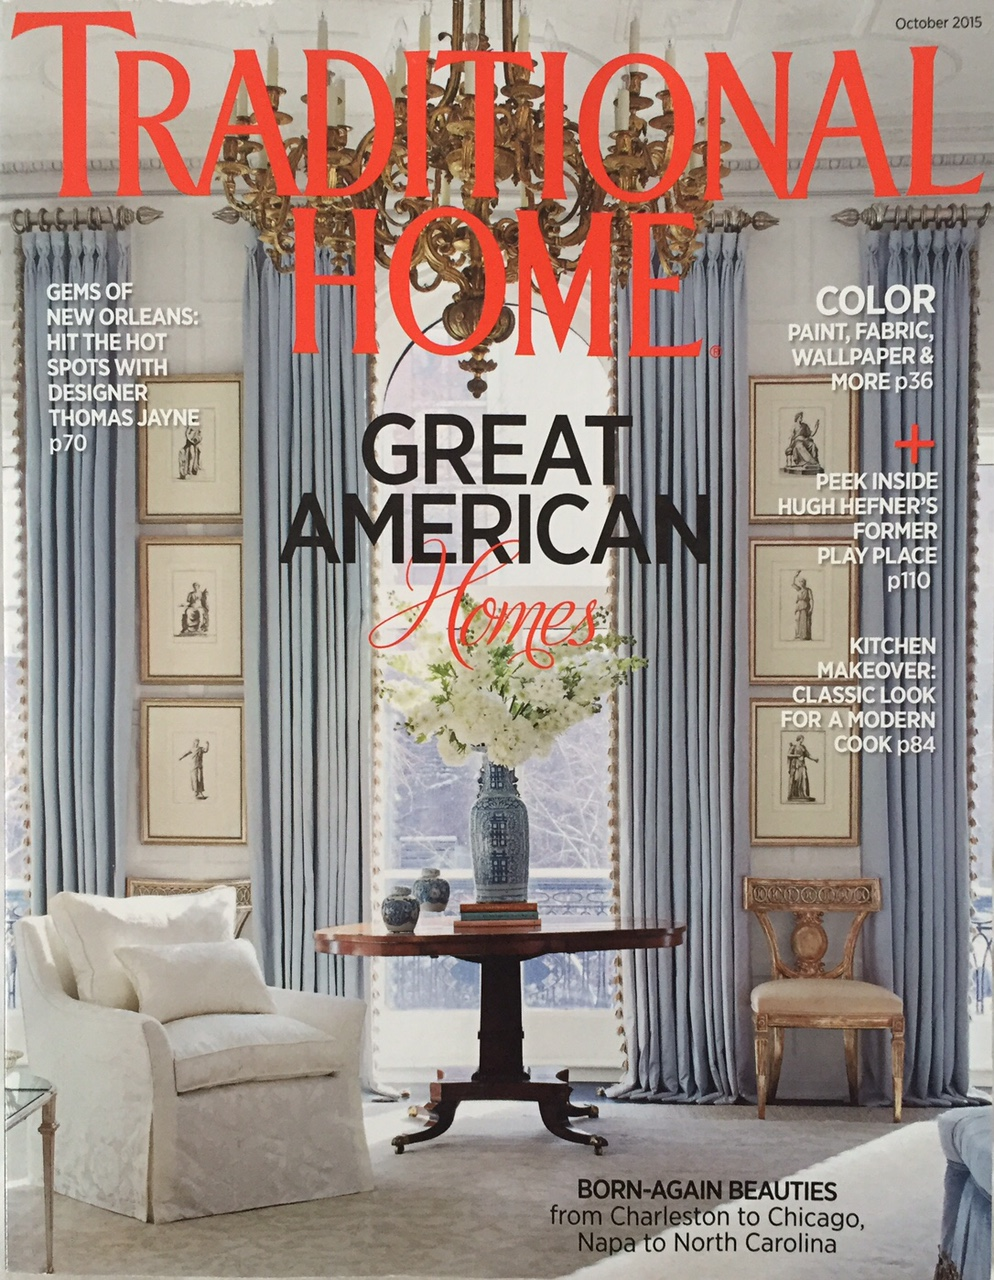 MARKET READY CATHERINE M AUSTIN INTERIOR DESIGN IN OCTOBER TRADITIONAL HOME